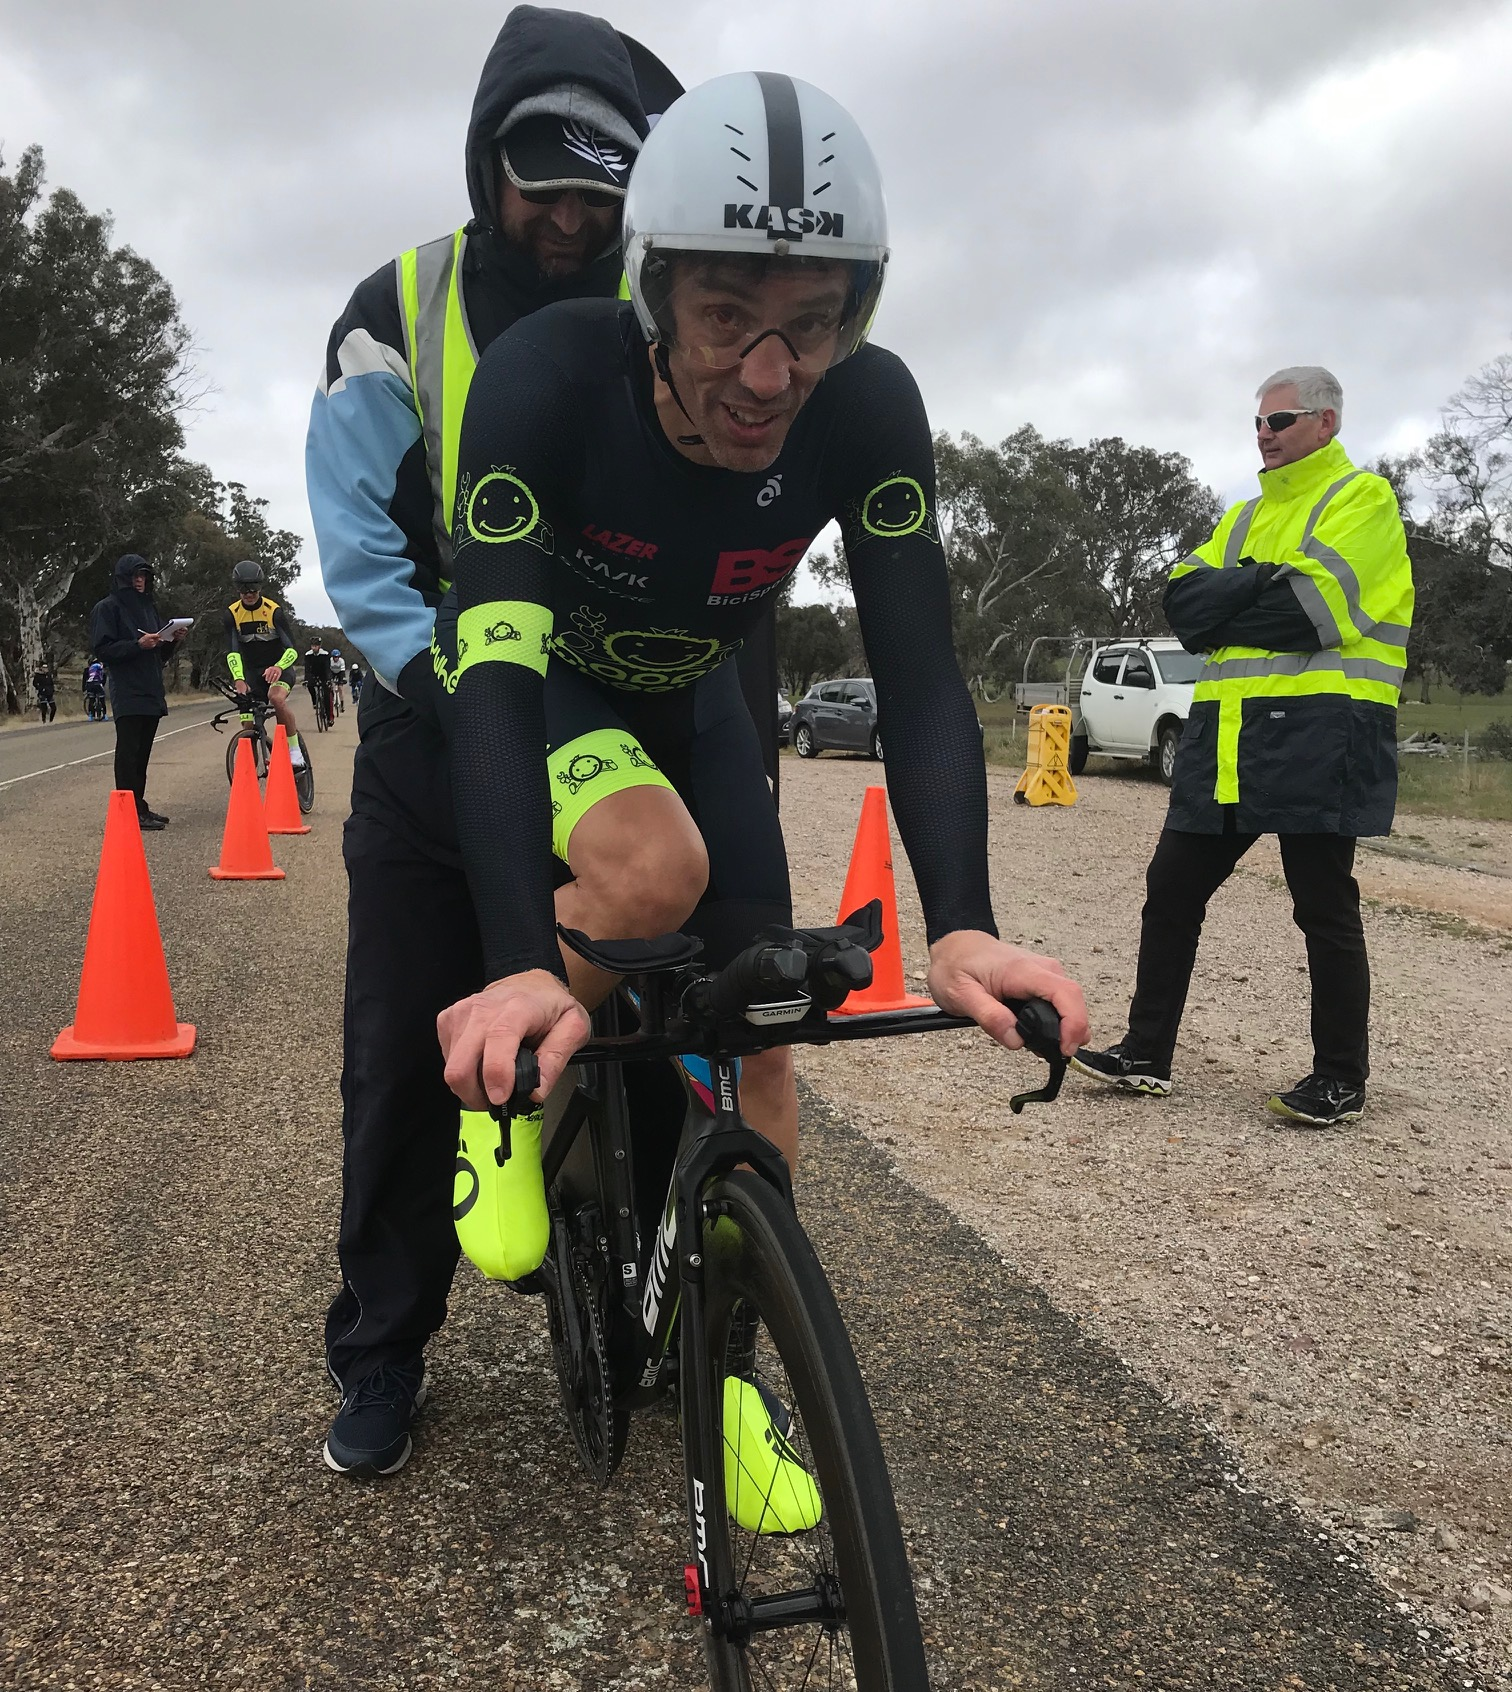 Masters ITT Championships @ Gunning @ 7 Sept - Randolph Baral on the start line & headed for 5th place in M5